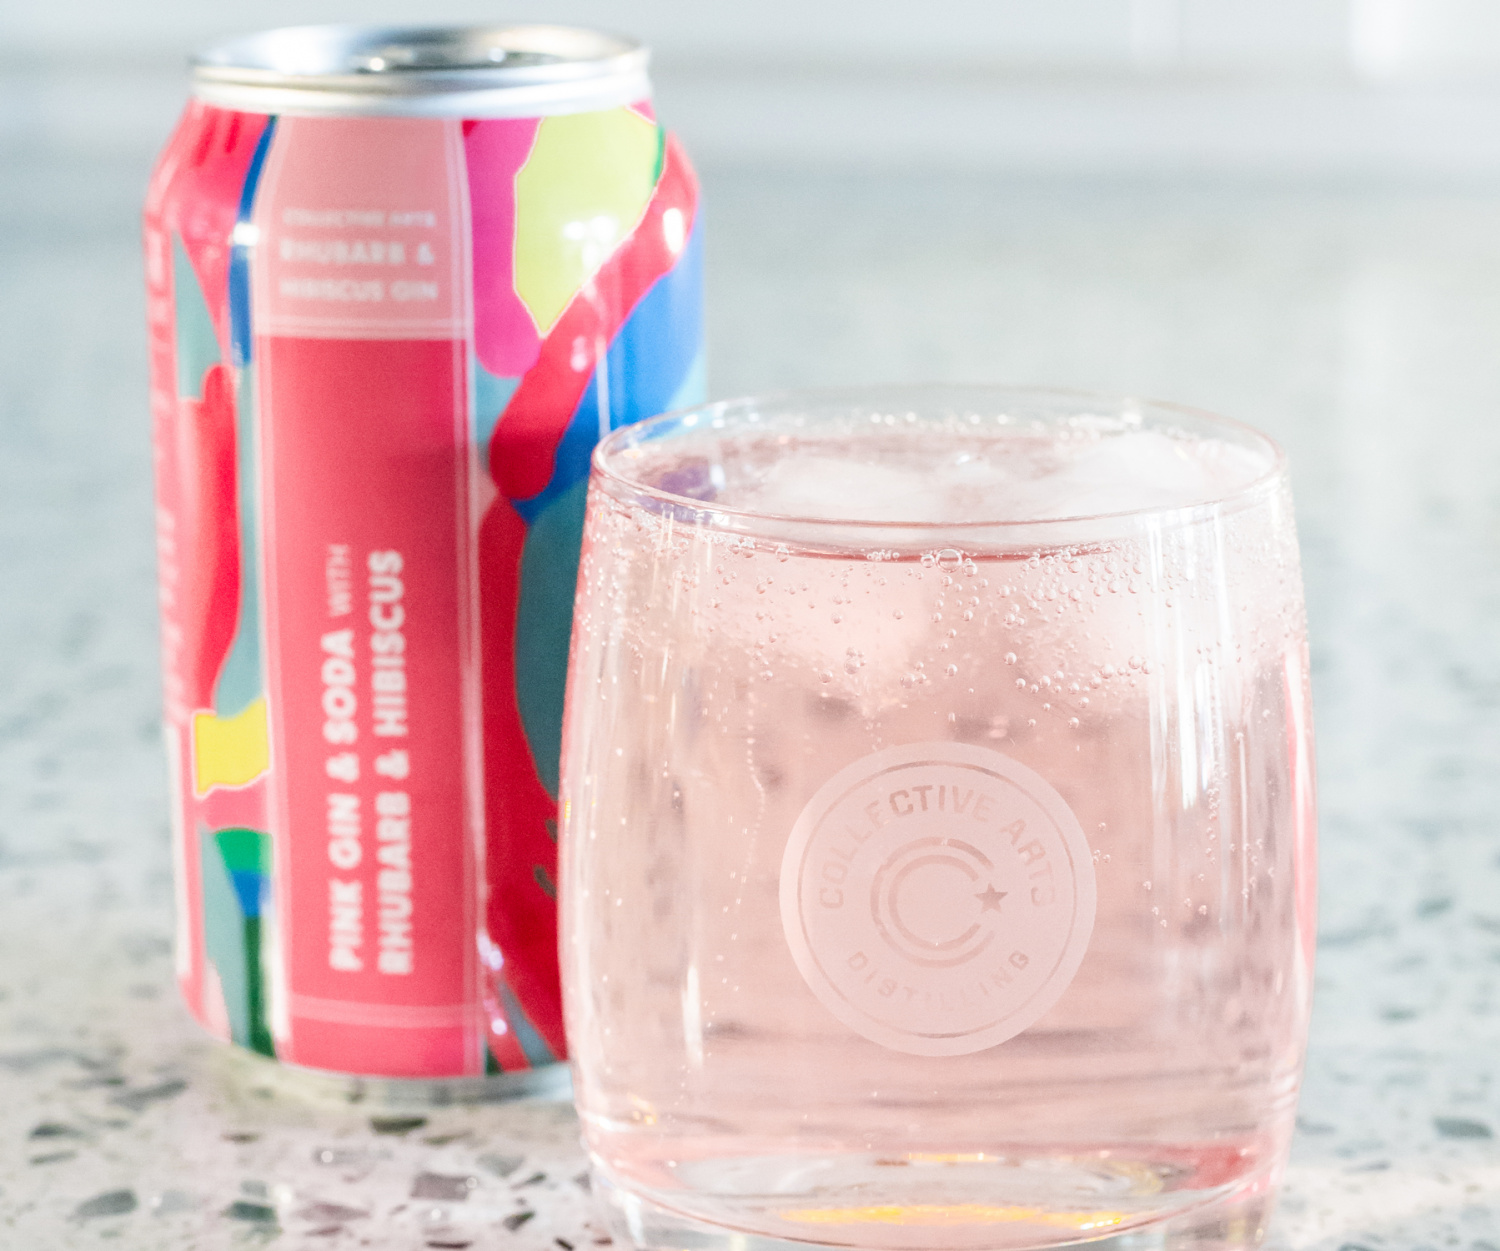 Collective Arts' new Toronto brewery | Collective Arts sparkling gin sodas in a can